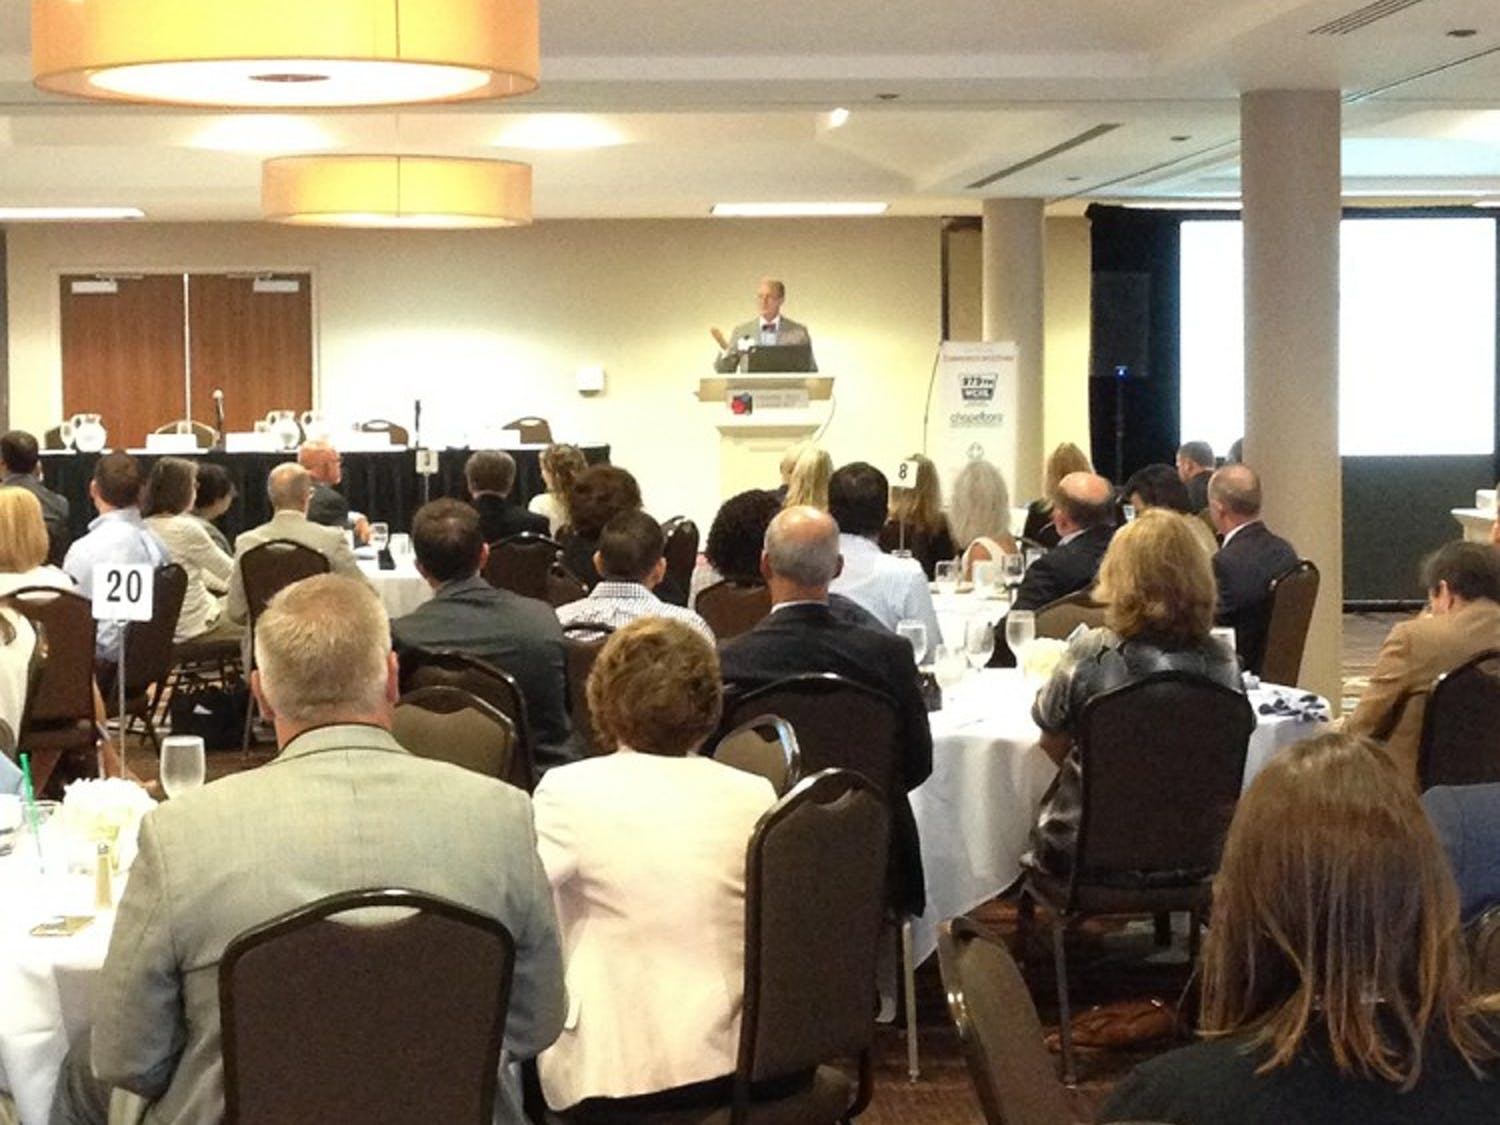 People gather to hear about recent growth anddevelopment in Orange County at the Spaces and Places meeting Thursday.